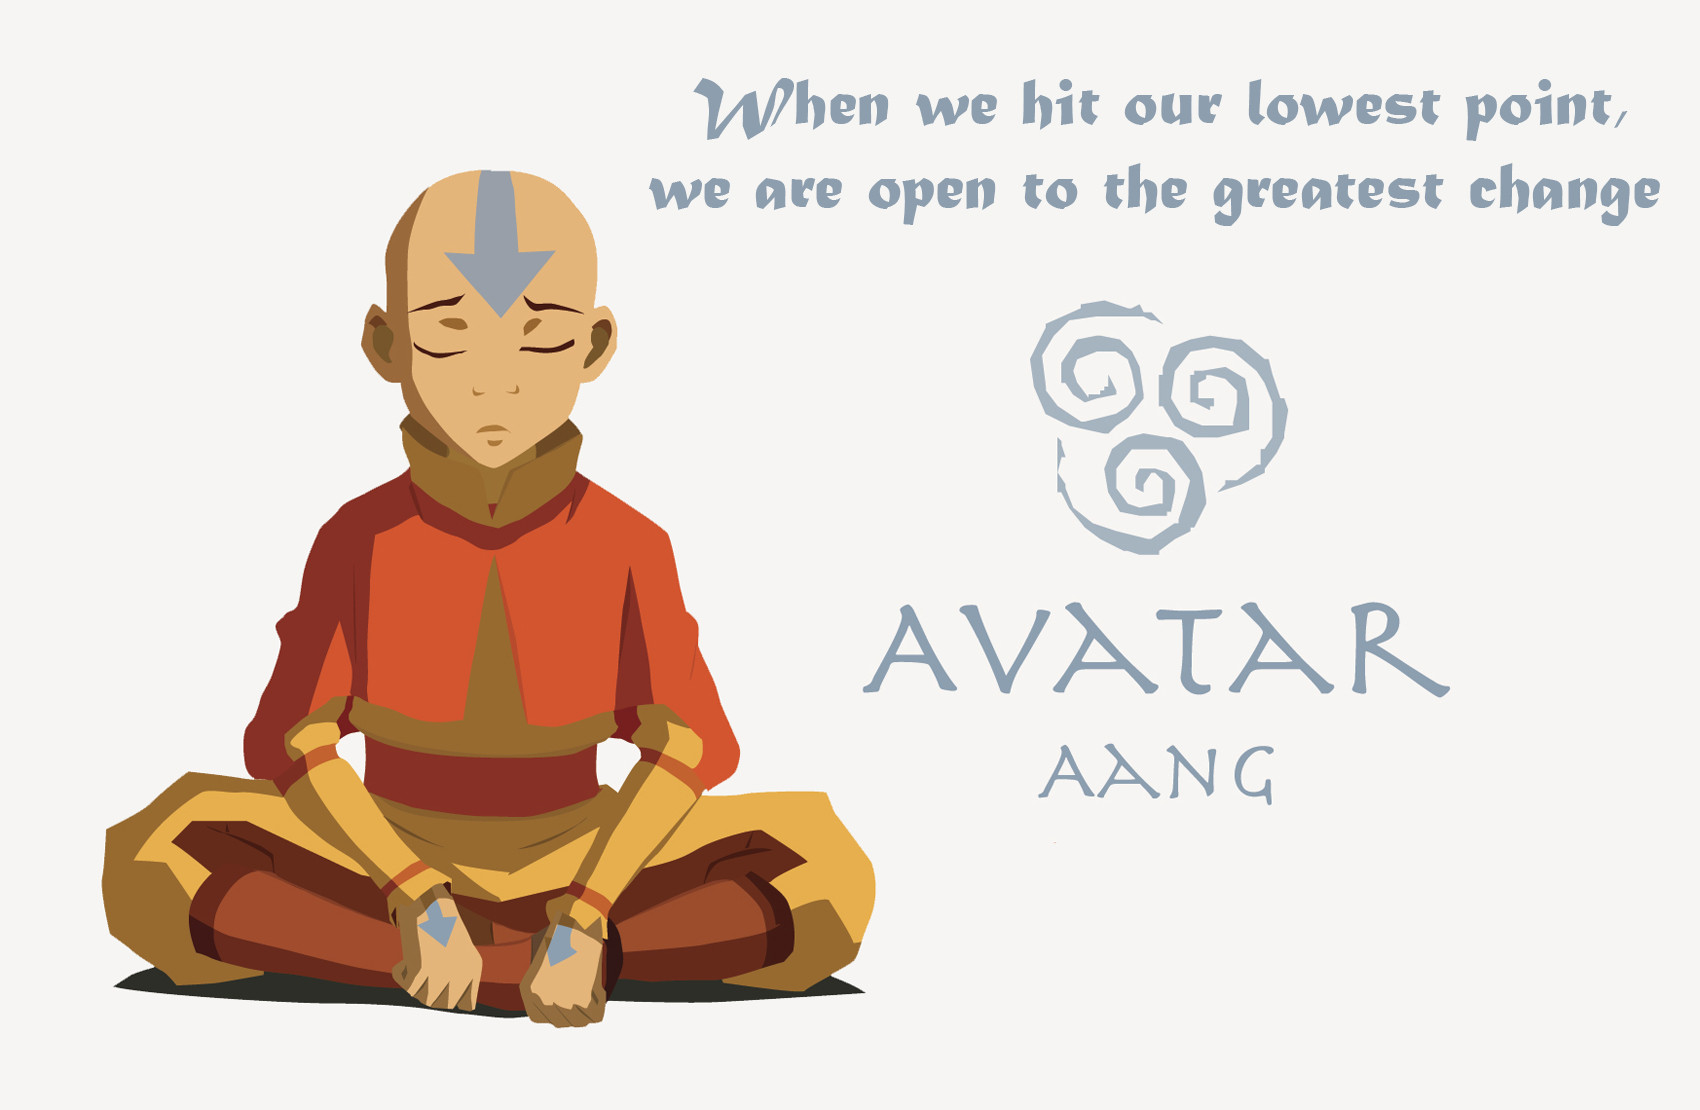 """When we hit our lowest point, we are open to the greatest change."" – Avatar Aang [1700 x 1110]"